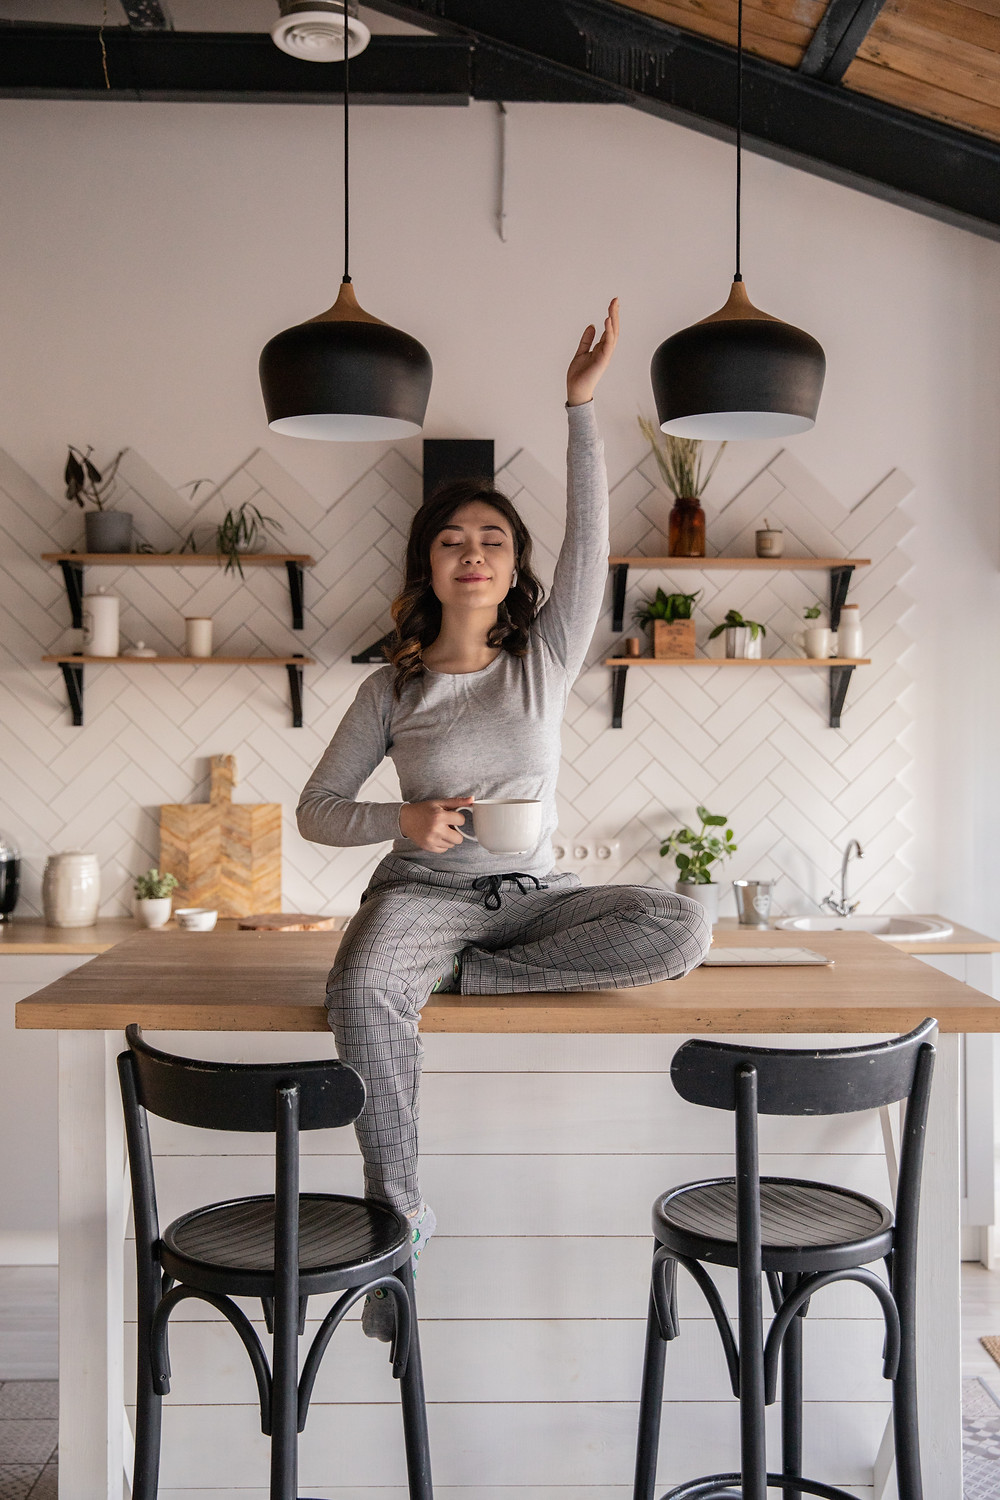 Woman sitting on kitchen table, coffee mug in one hand, other hand is raised to the ceiling, her eyes are closed. Free image courtesy of Pexels